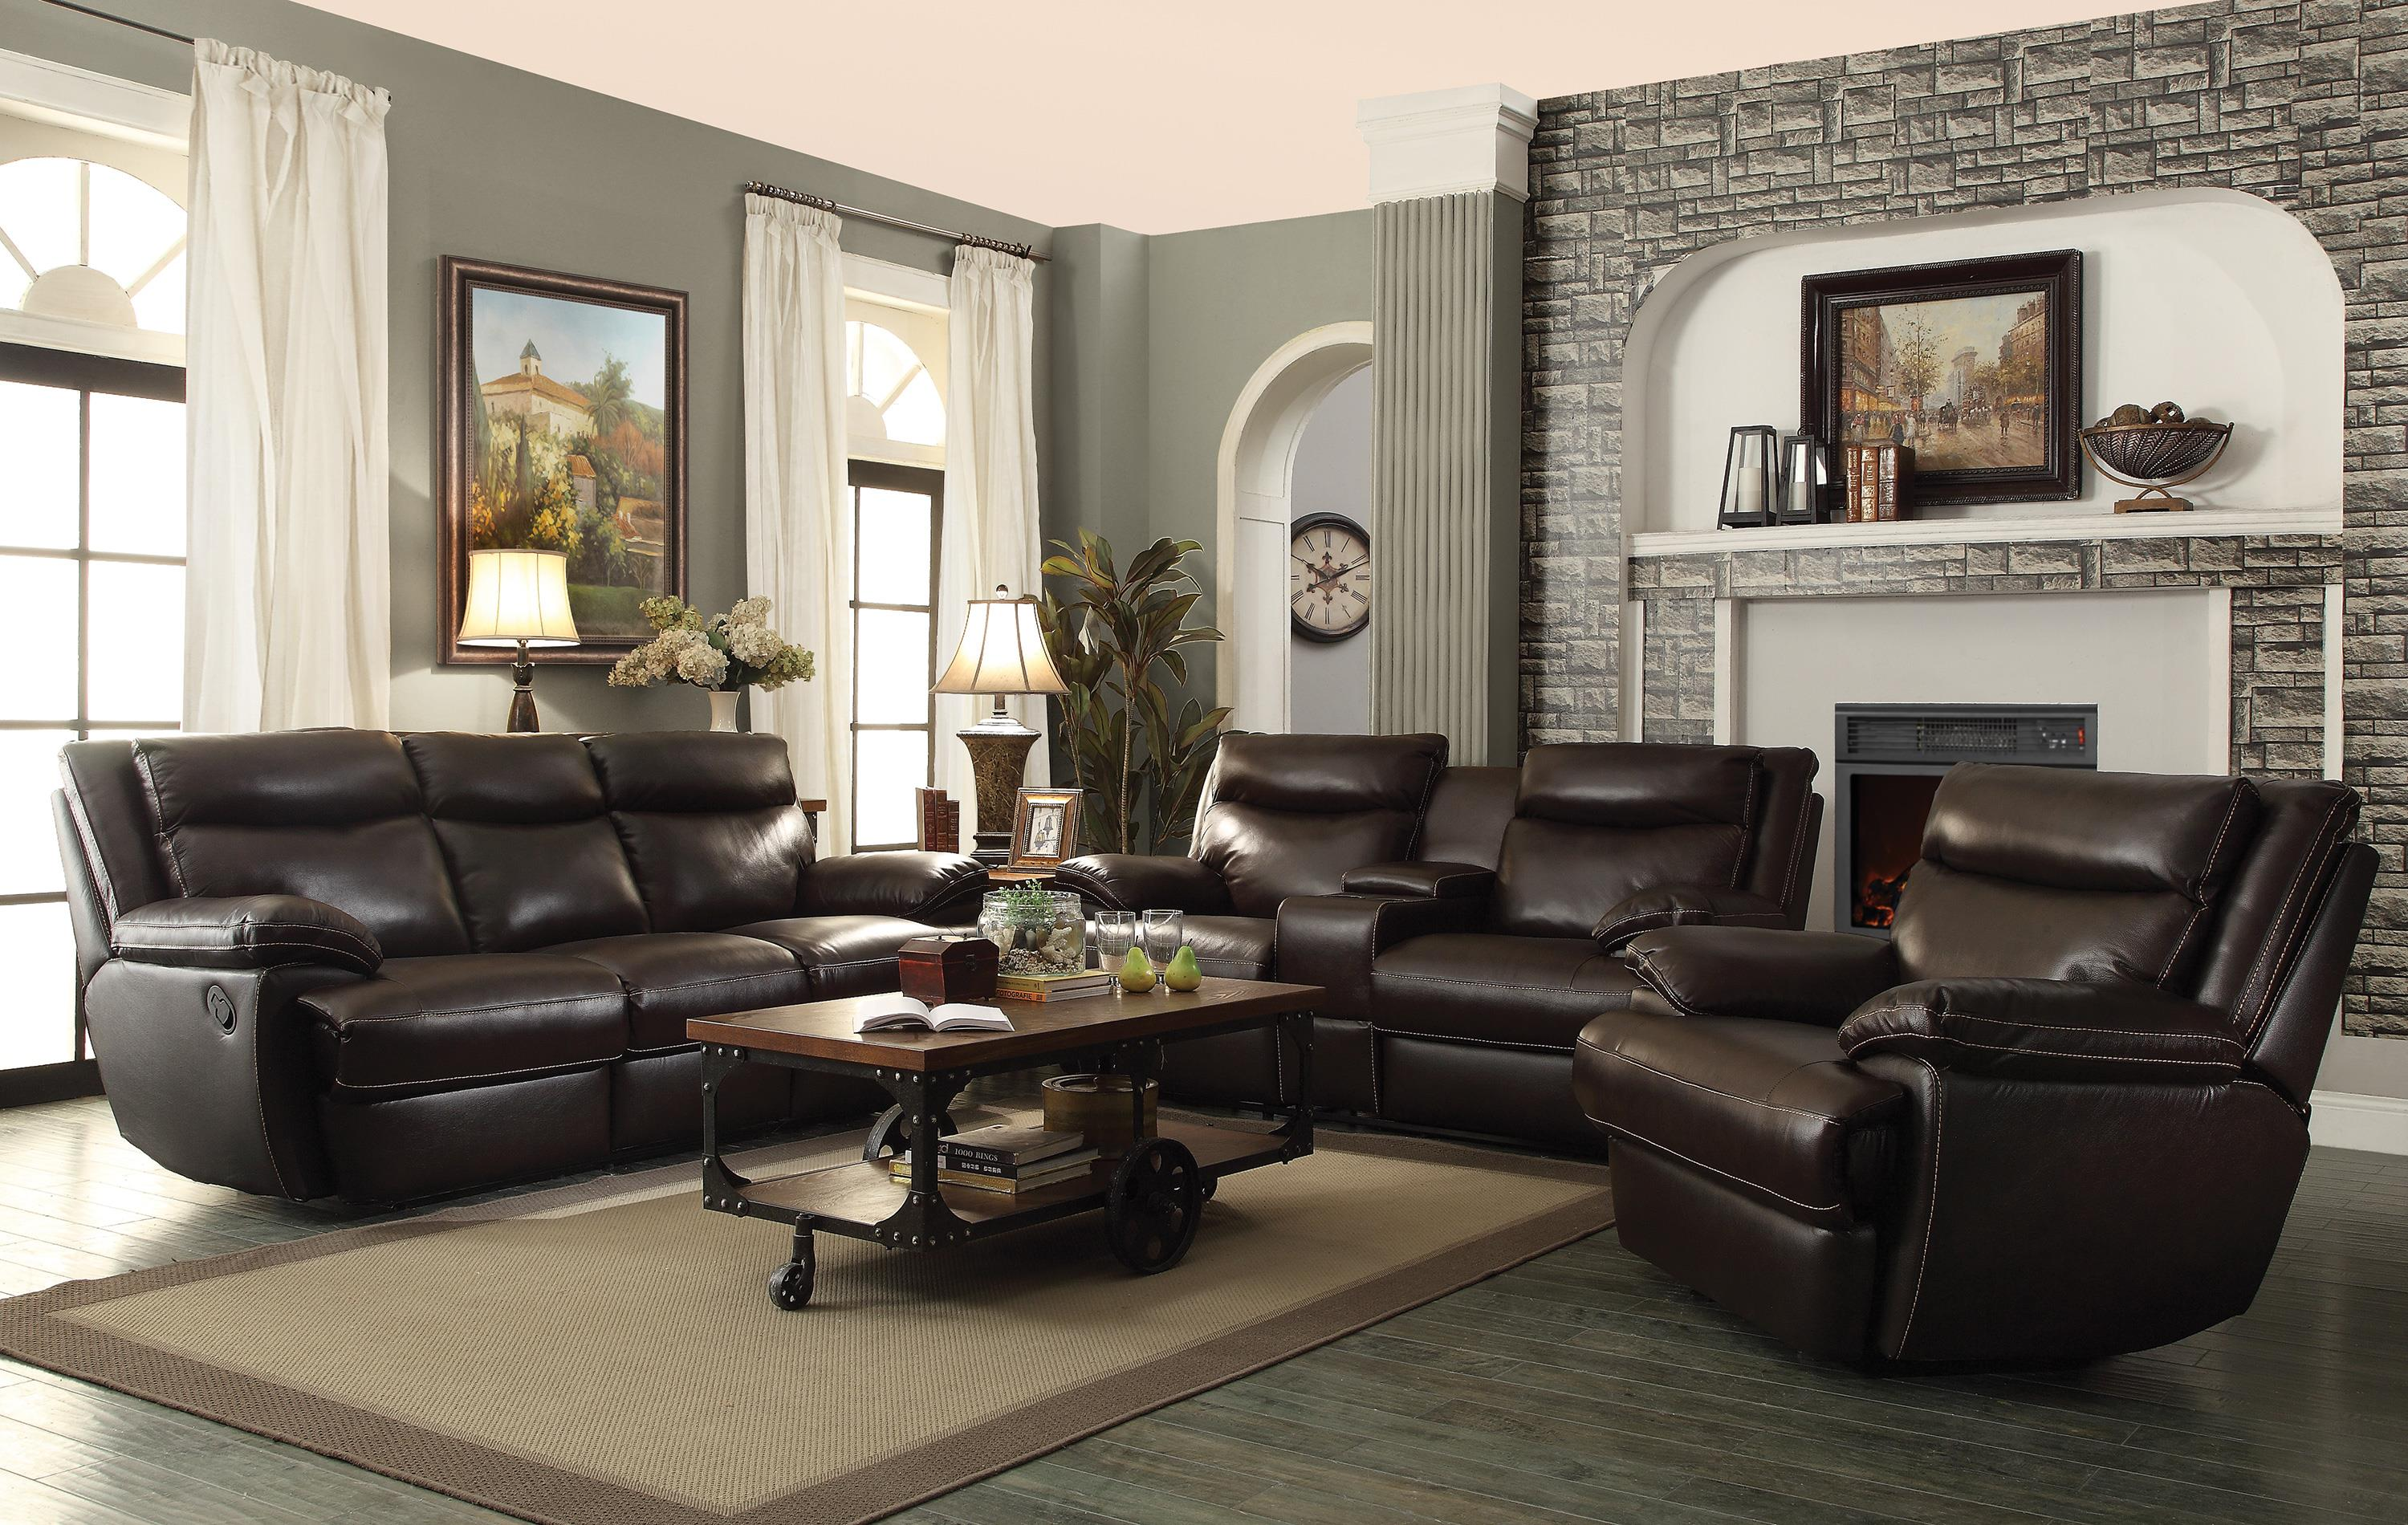 Tremendous Coaster Macpherson 2Pc Reclining Sofa Loveseat Set Gmtry Best Dining Table And Chair Ideas Images Gmtryco